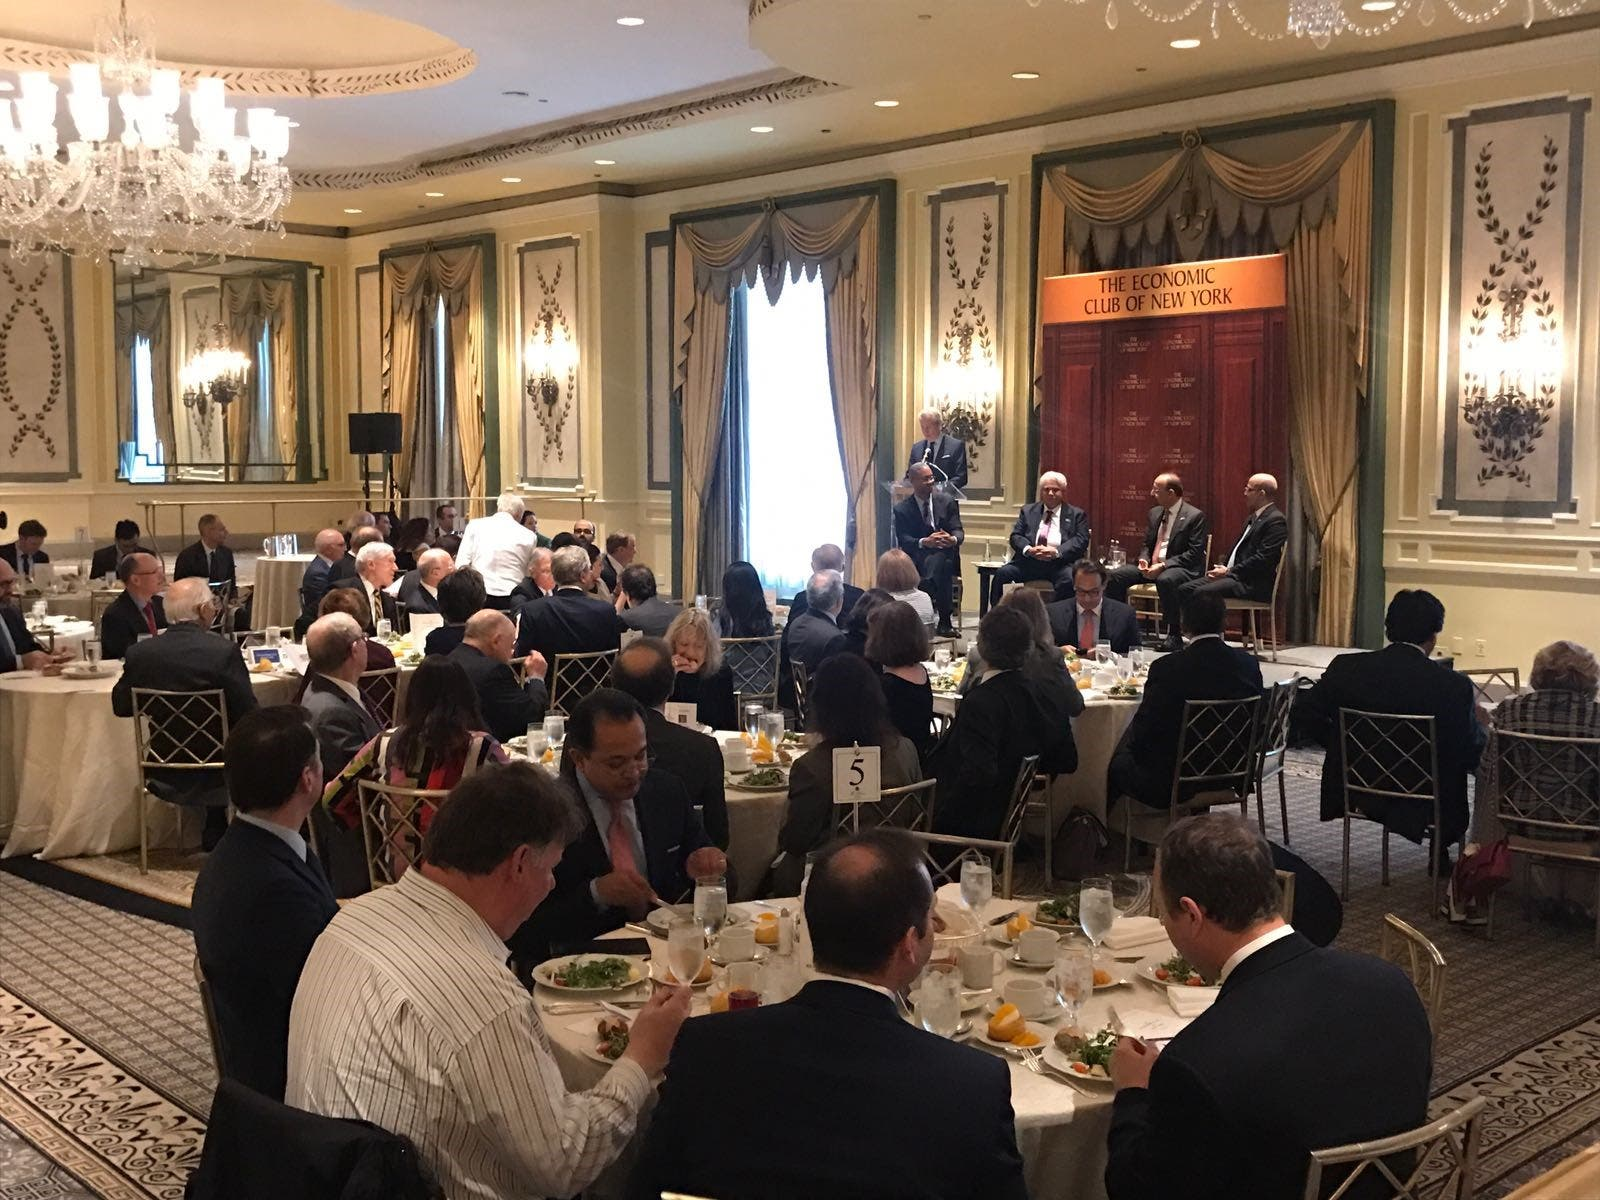 At Economic Club of New York, Saudi ministers showcase new economic prospects